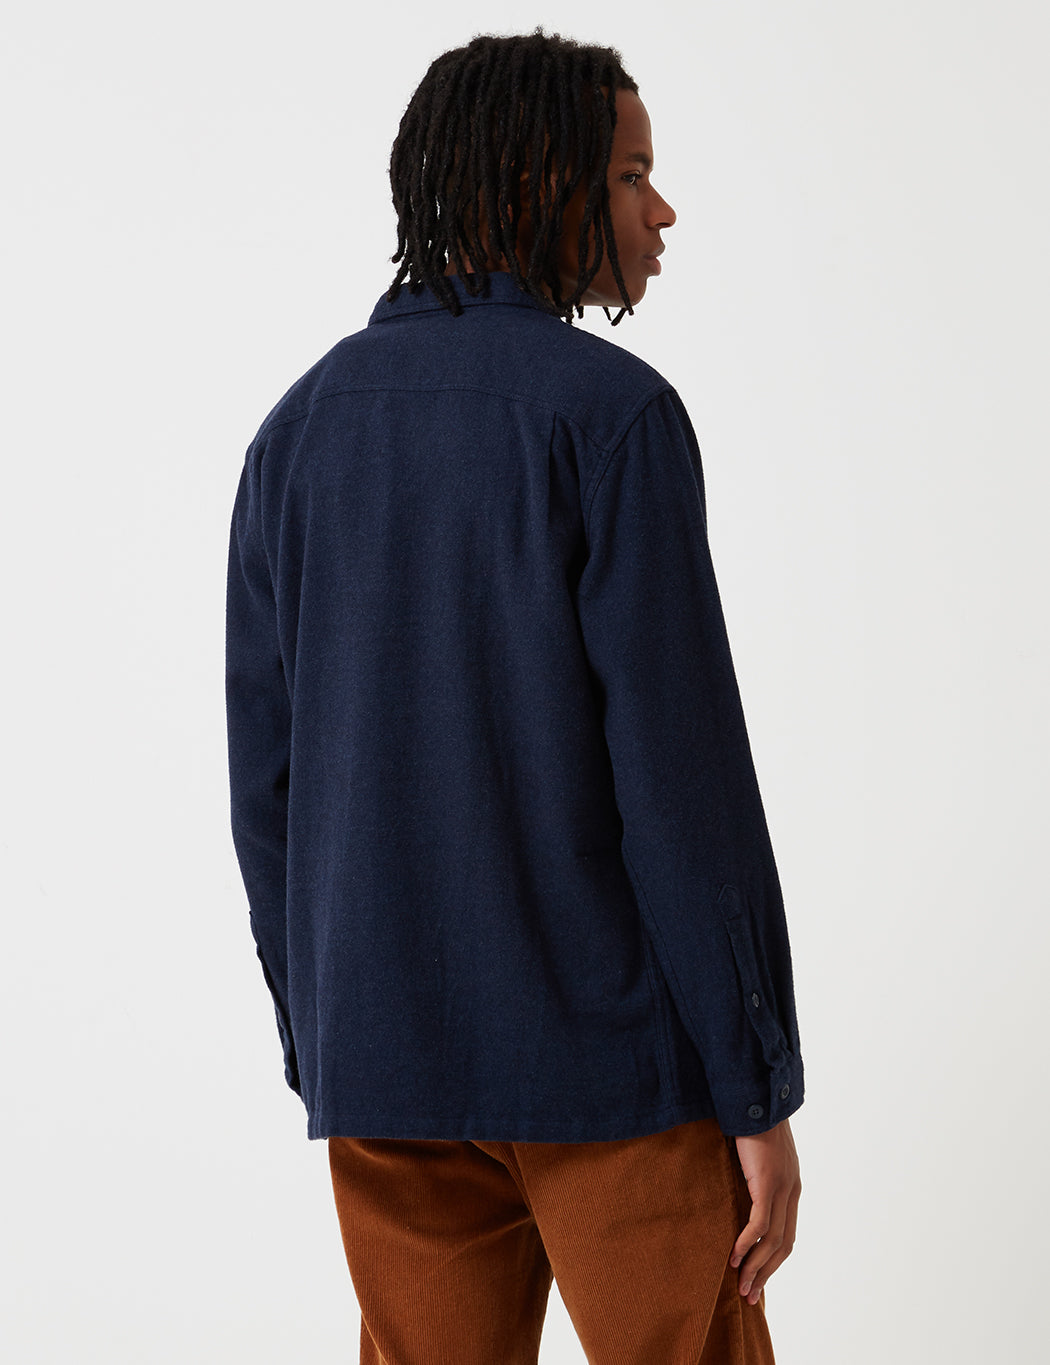 Patagonia M's Fjord Flannel Shirt - Navy Blue